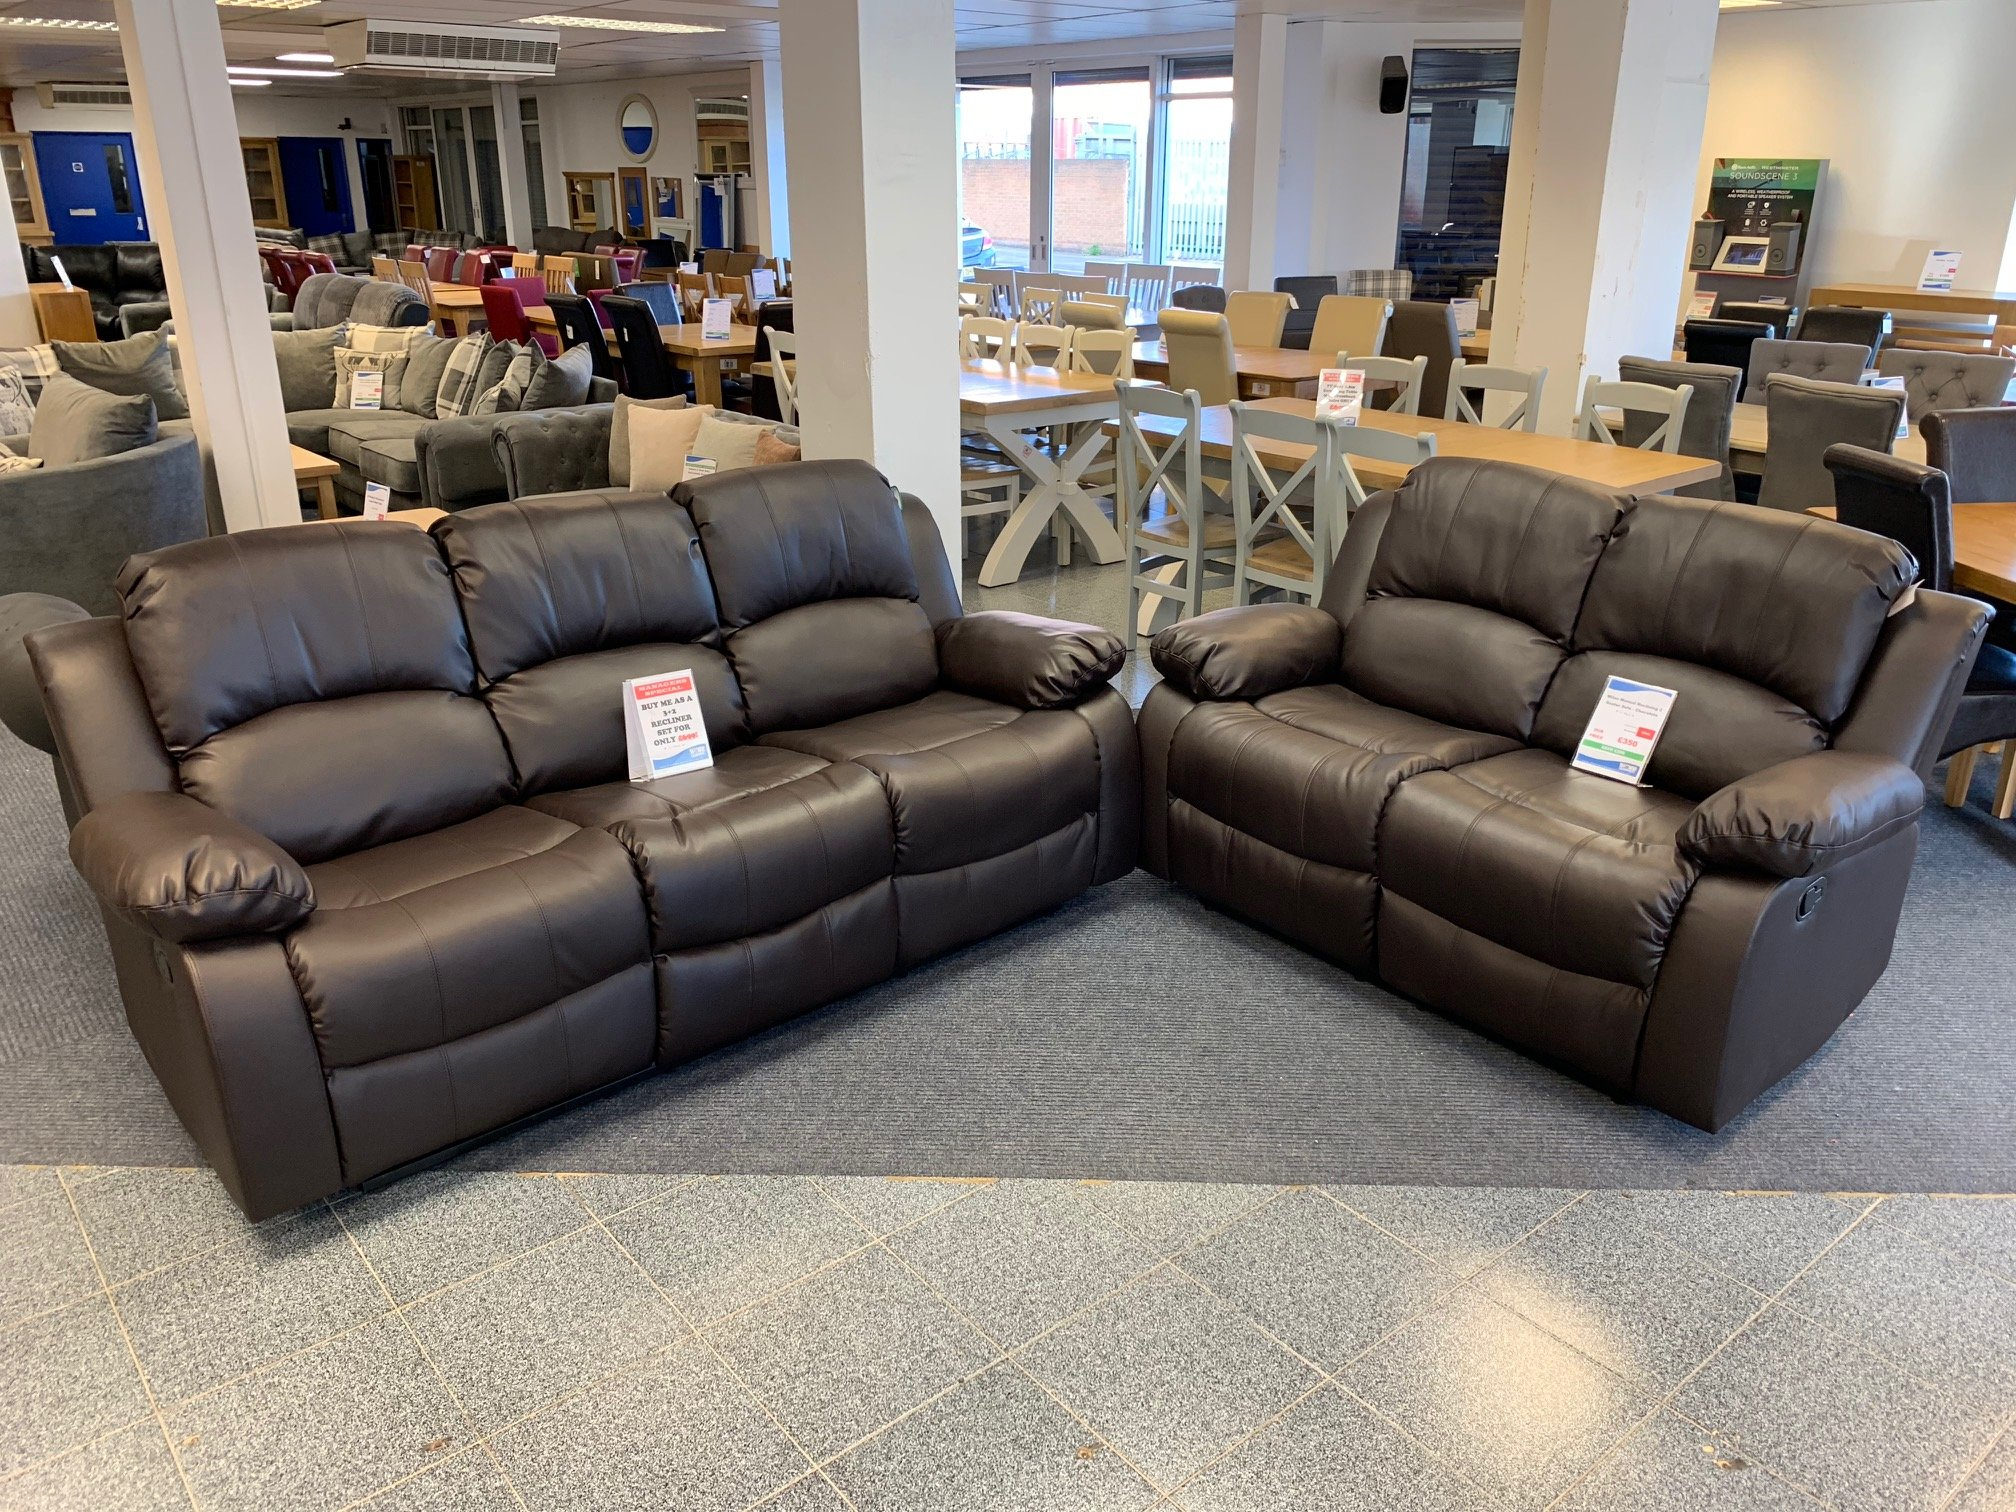 milan 3 2 reclining sofa set chocolate the clearance zone rh theclearancezone co uk recliner sofa sets india recliner sofa sets in kenya